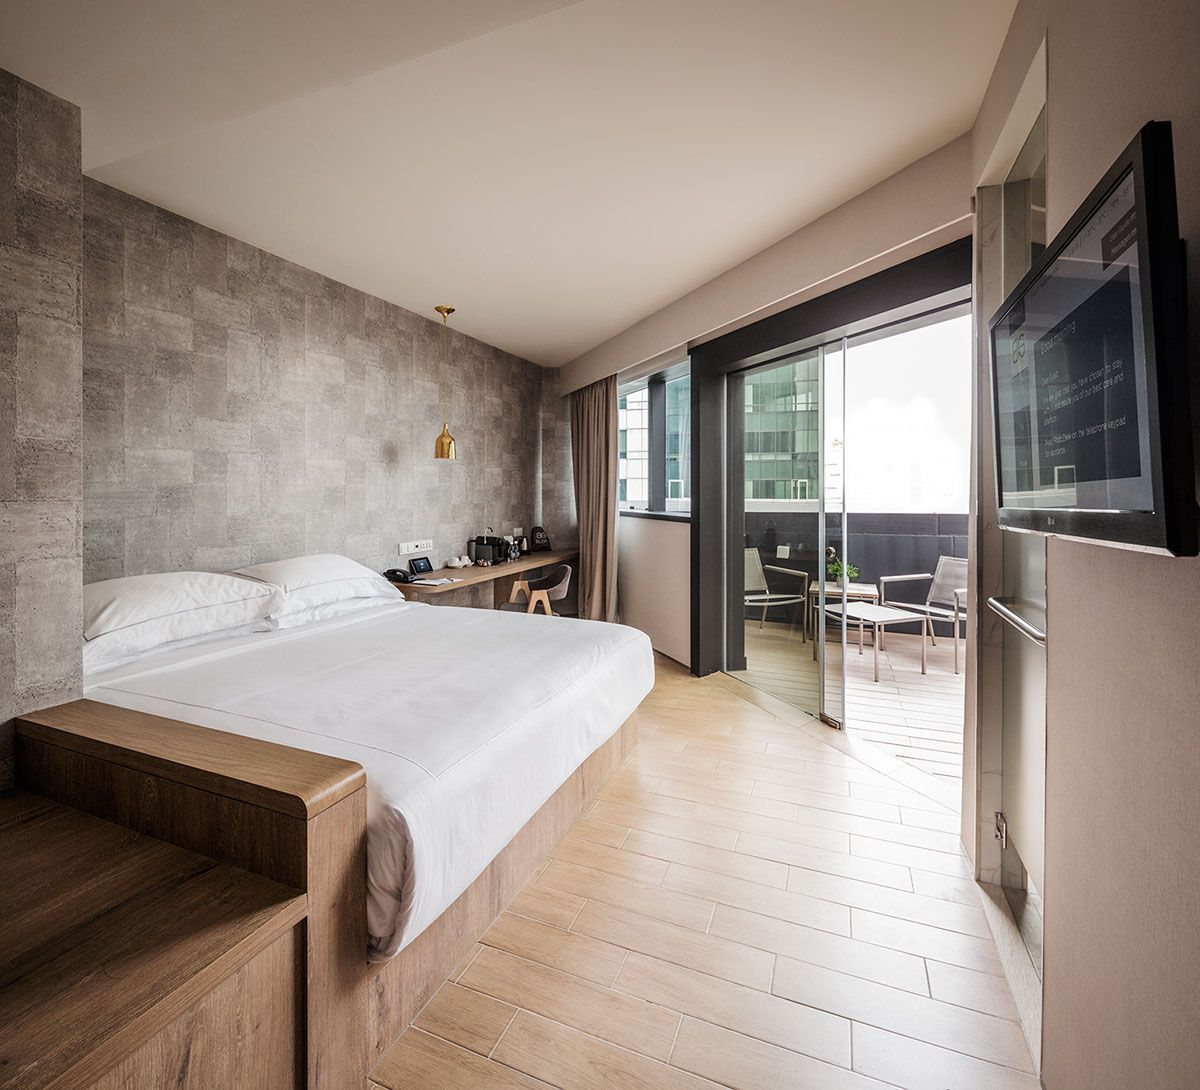 Singapore big hotel interior neutral and cool tones new crib pinterest singapore - Best bedroom with balcony interior ...